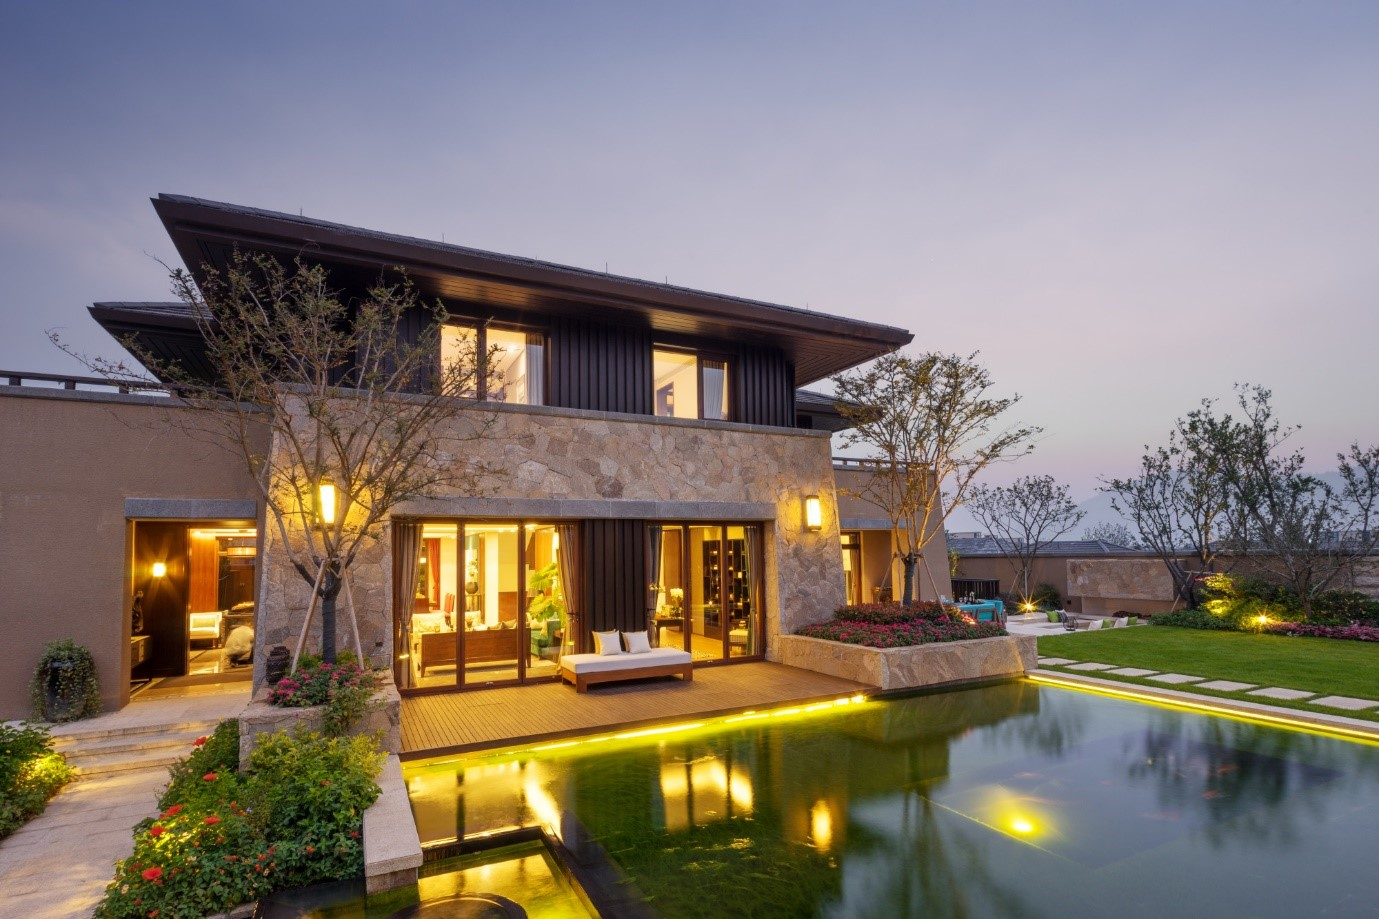 image - High-End Interior: 5 Most Coveted Luxury Home Design Ideas